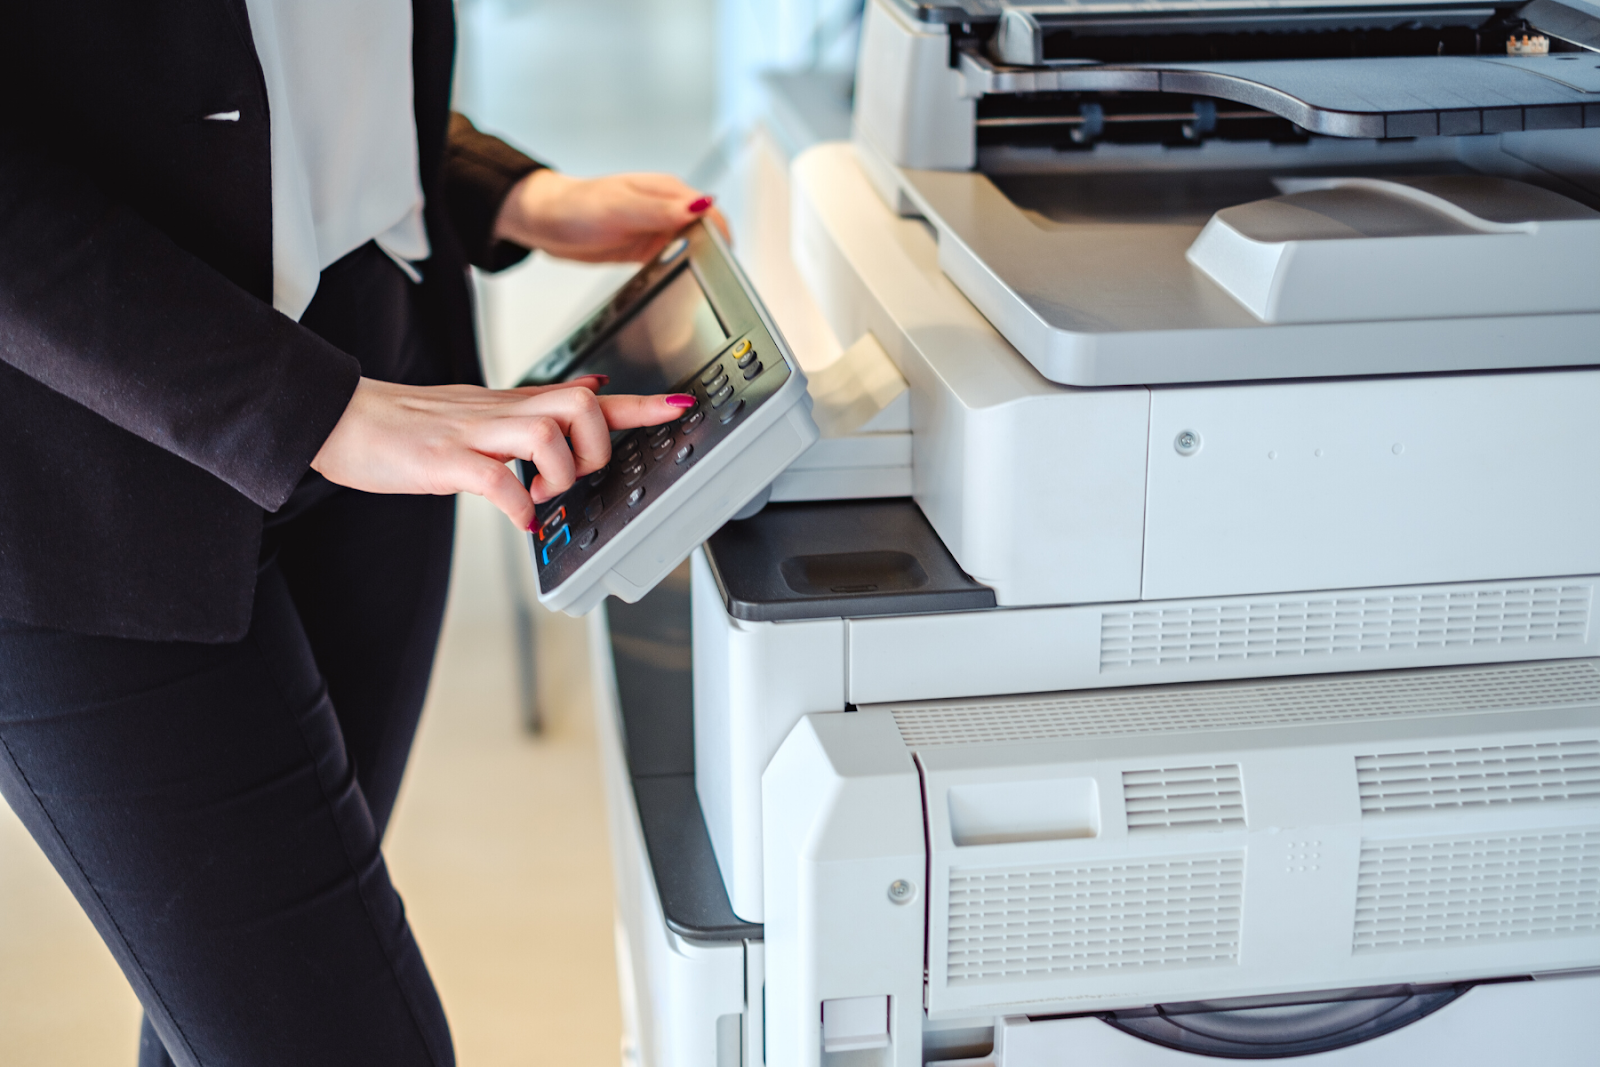 Woman using printer with managed print services in Toronto